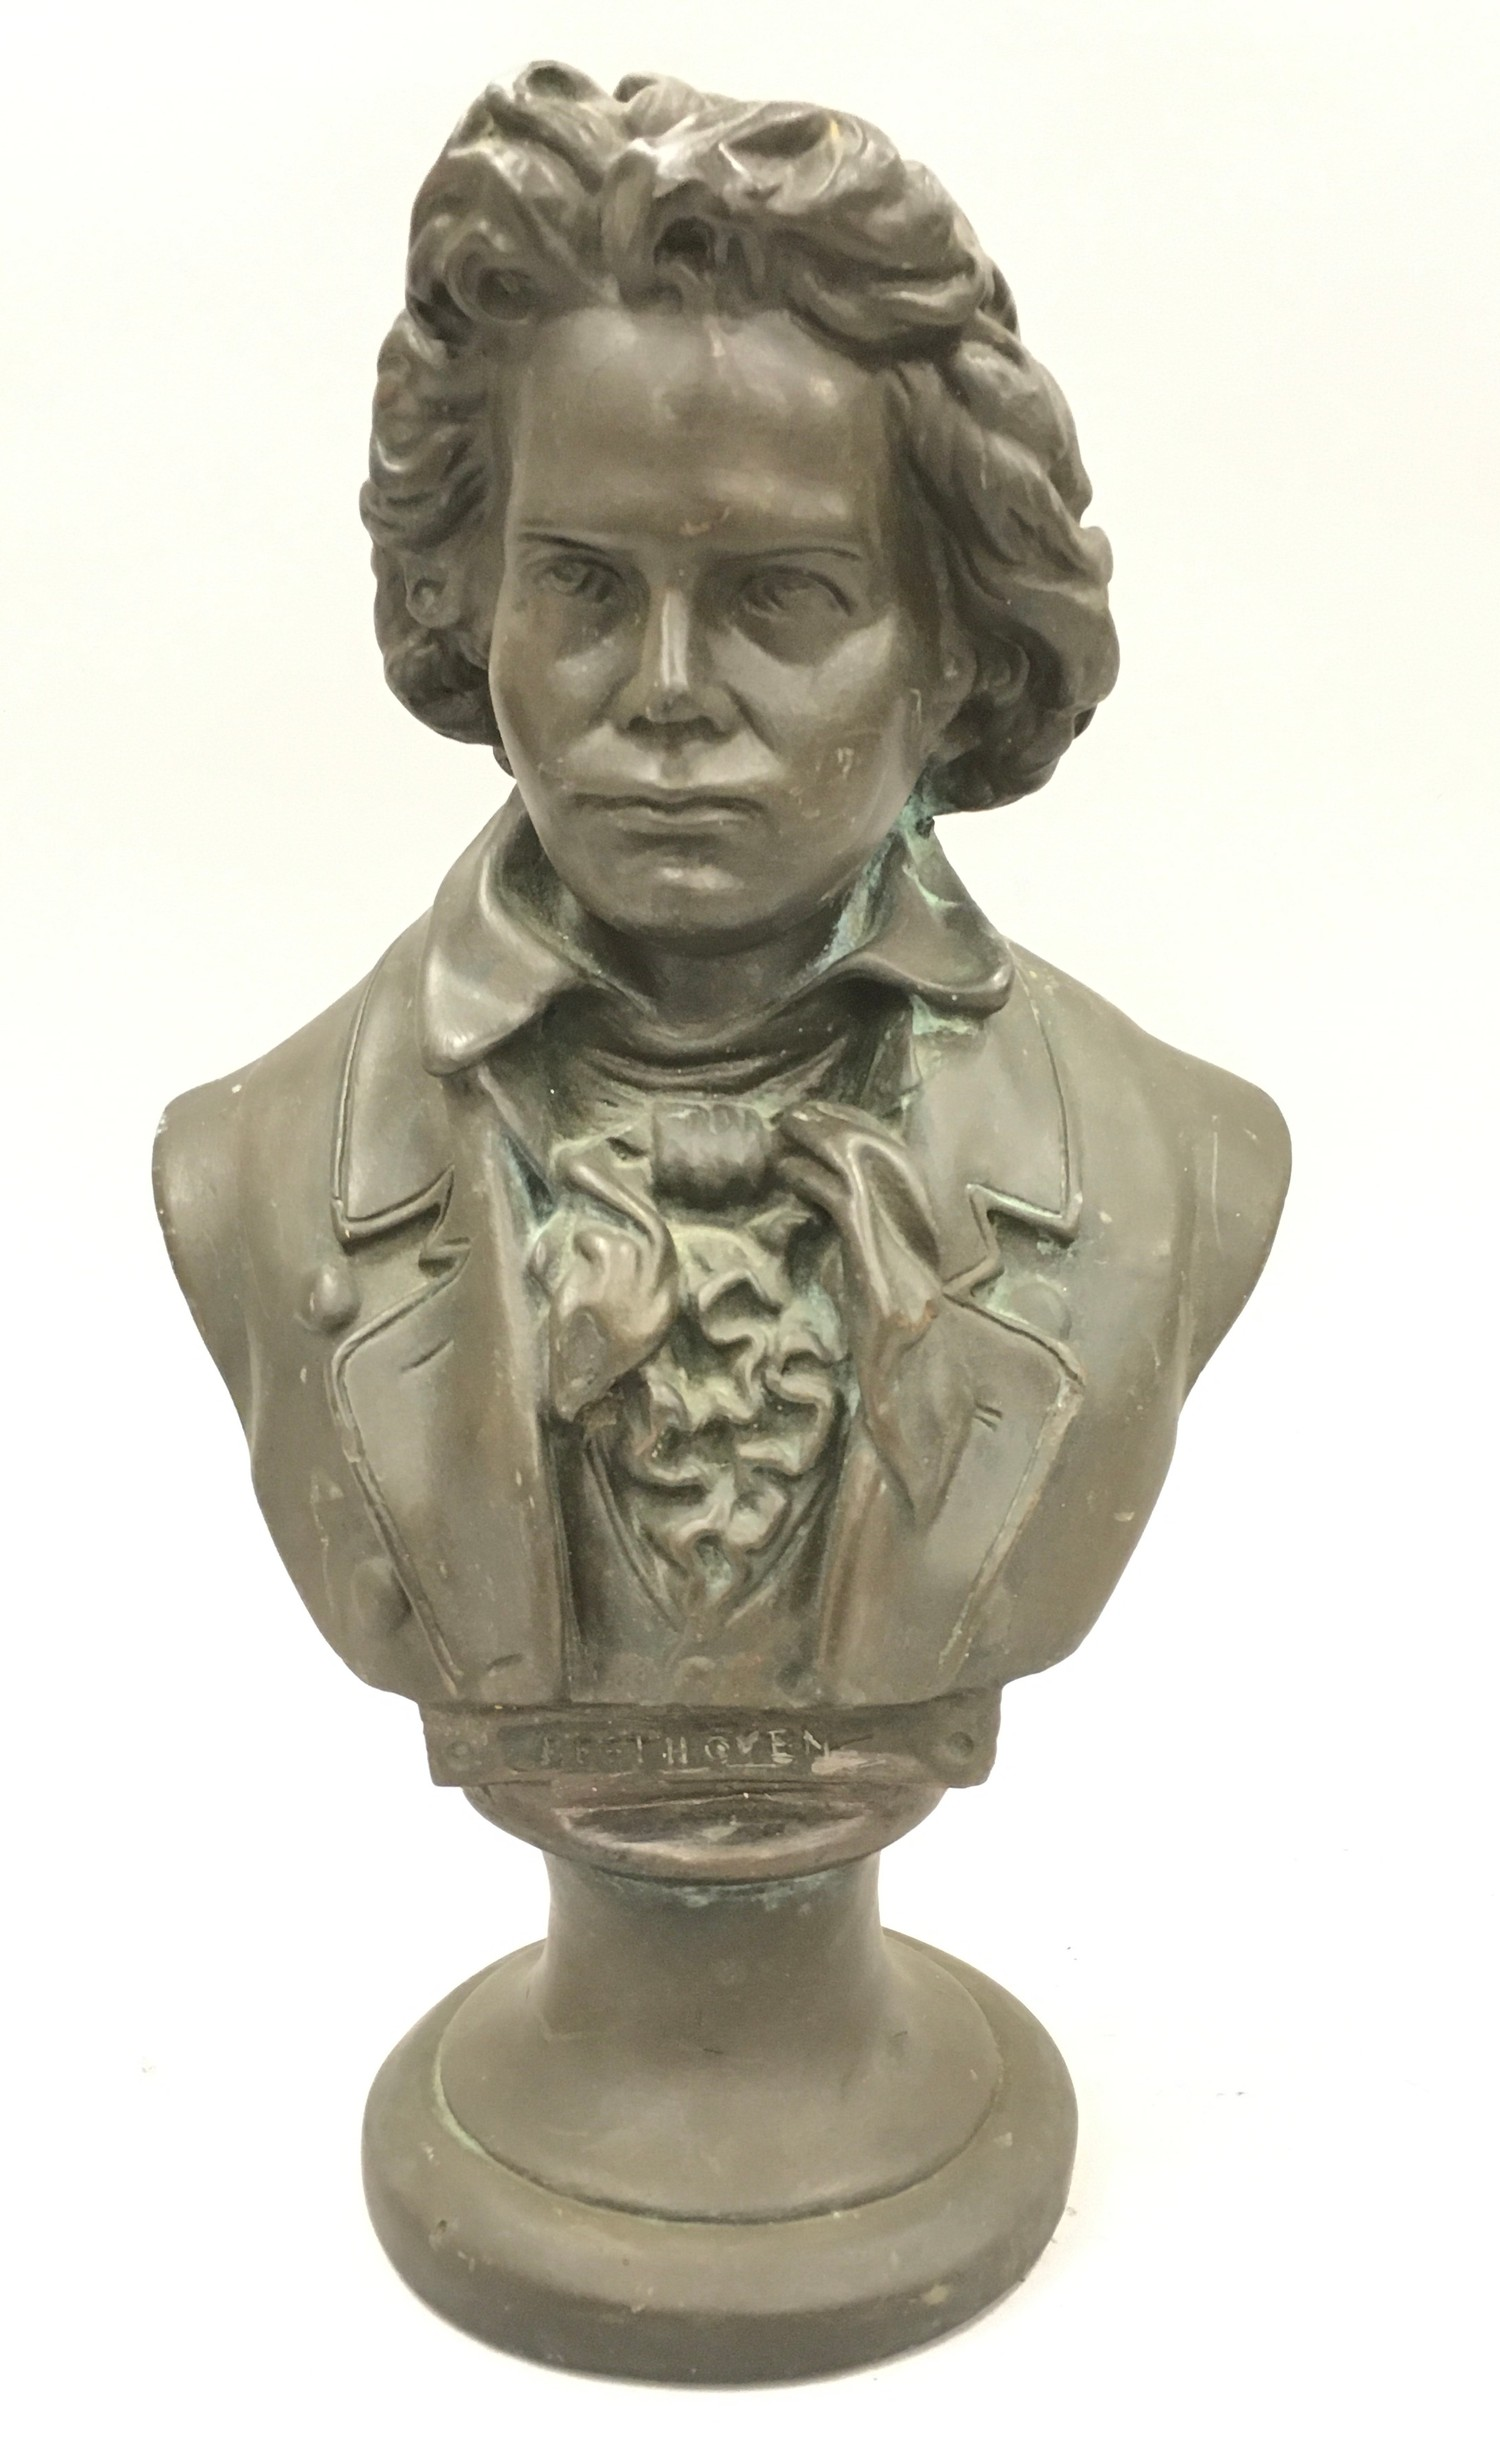 Cast metal bust of Beethoven 33cm tall